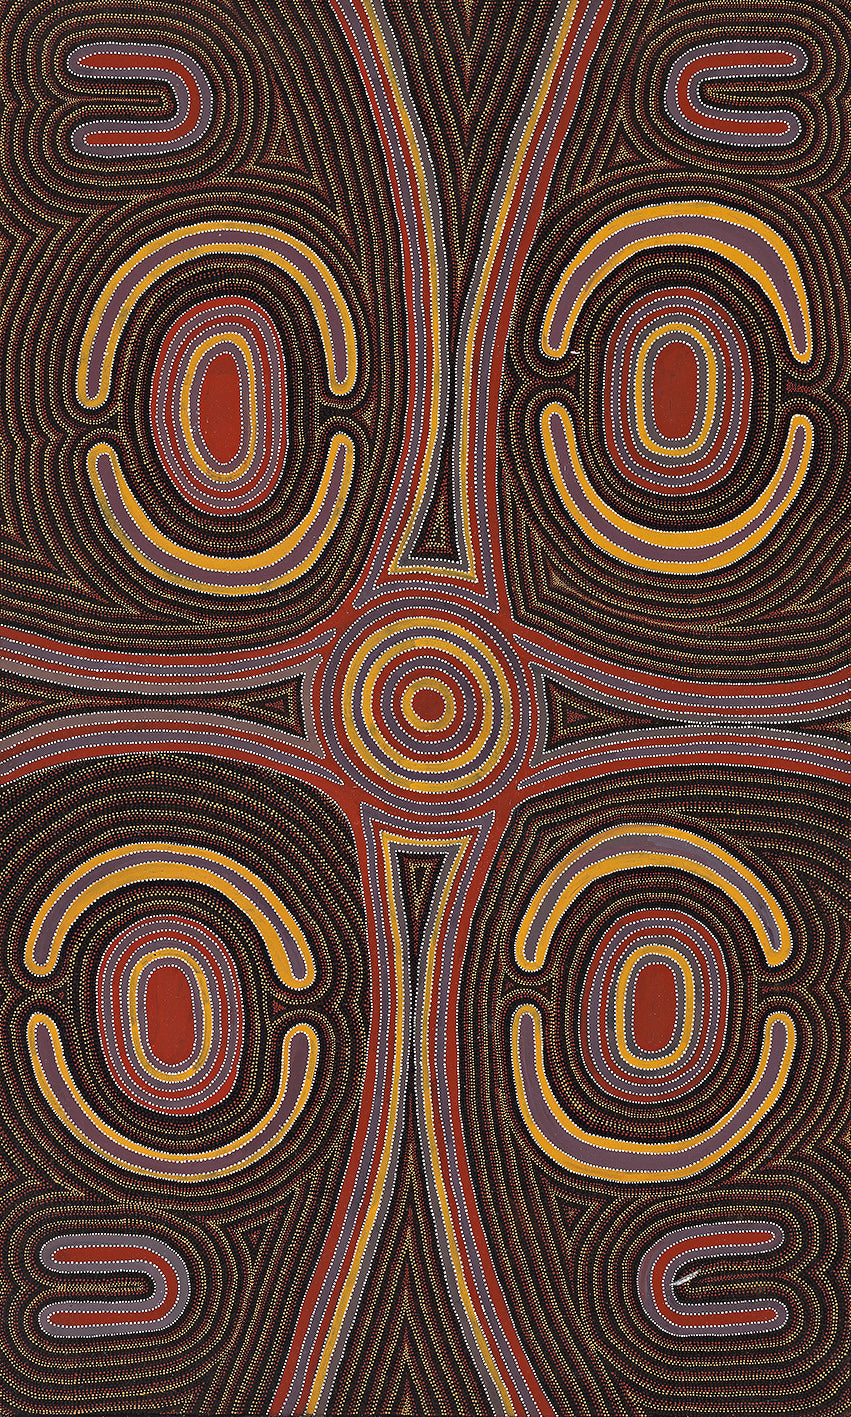 Australian Aboriginal Art Painting by Louie Pwerle of Utopia in 1994.